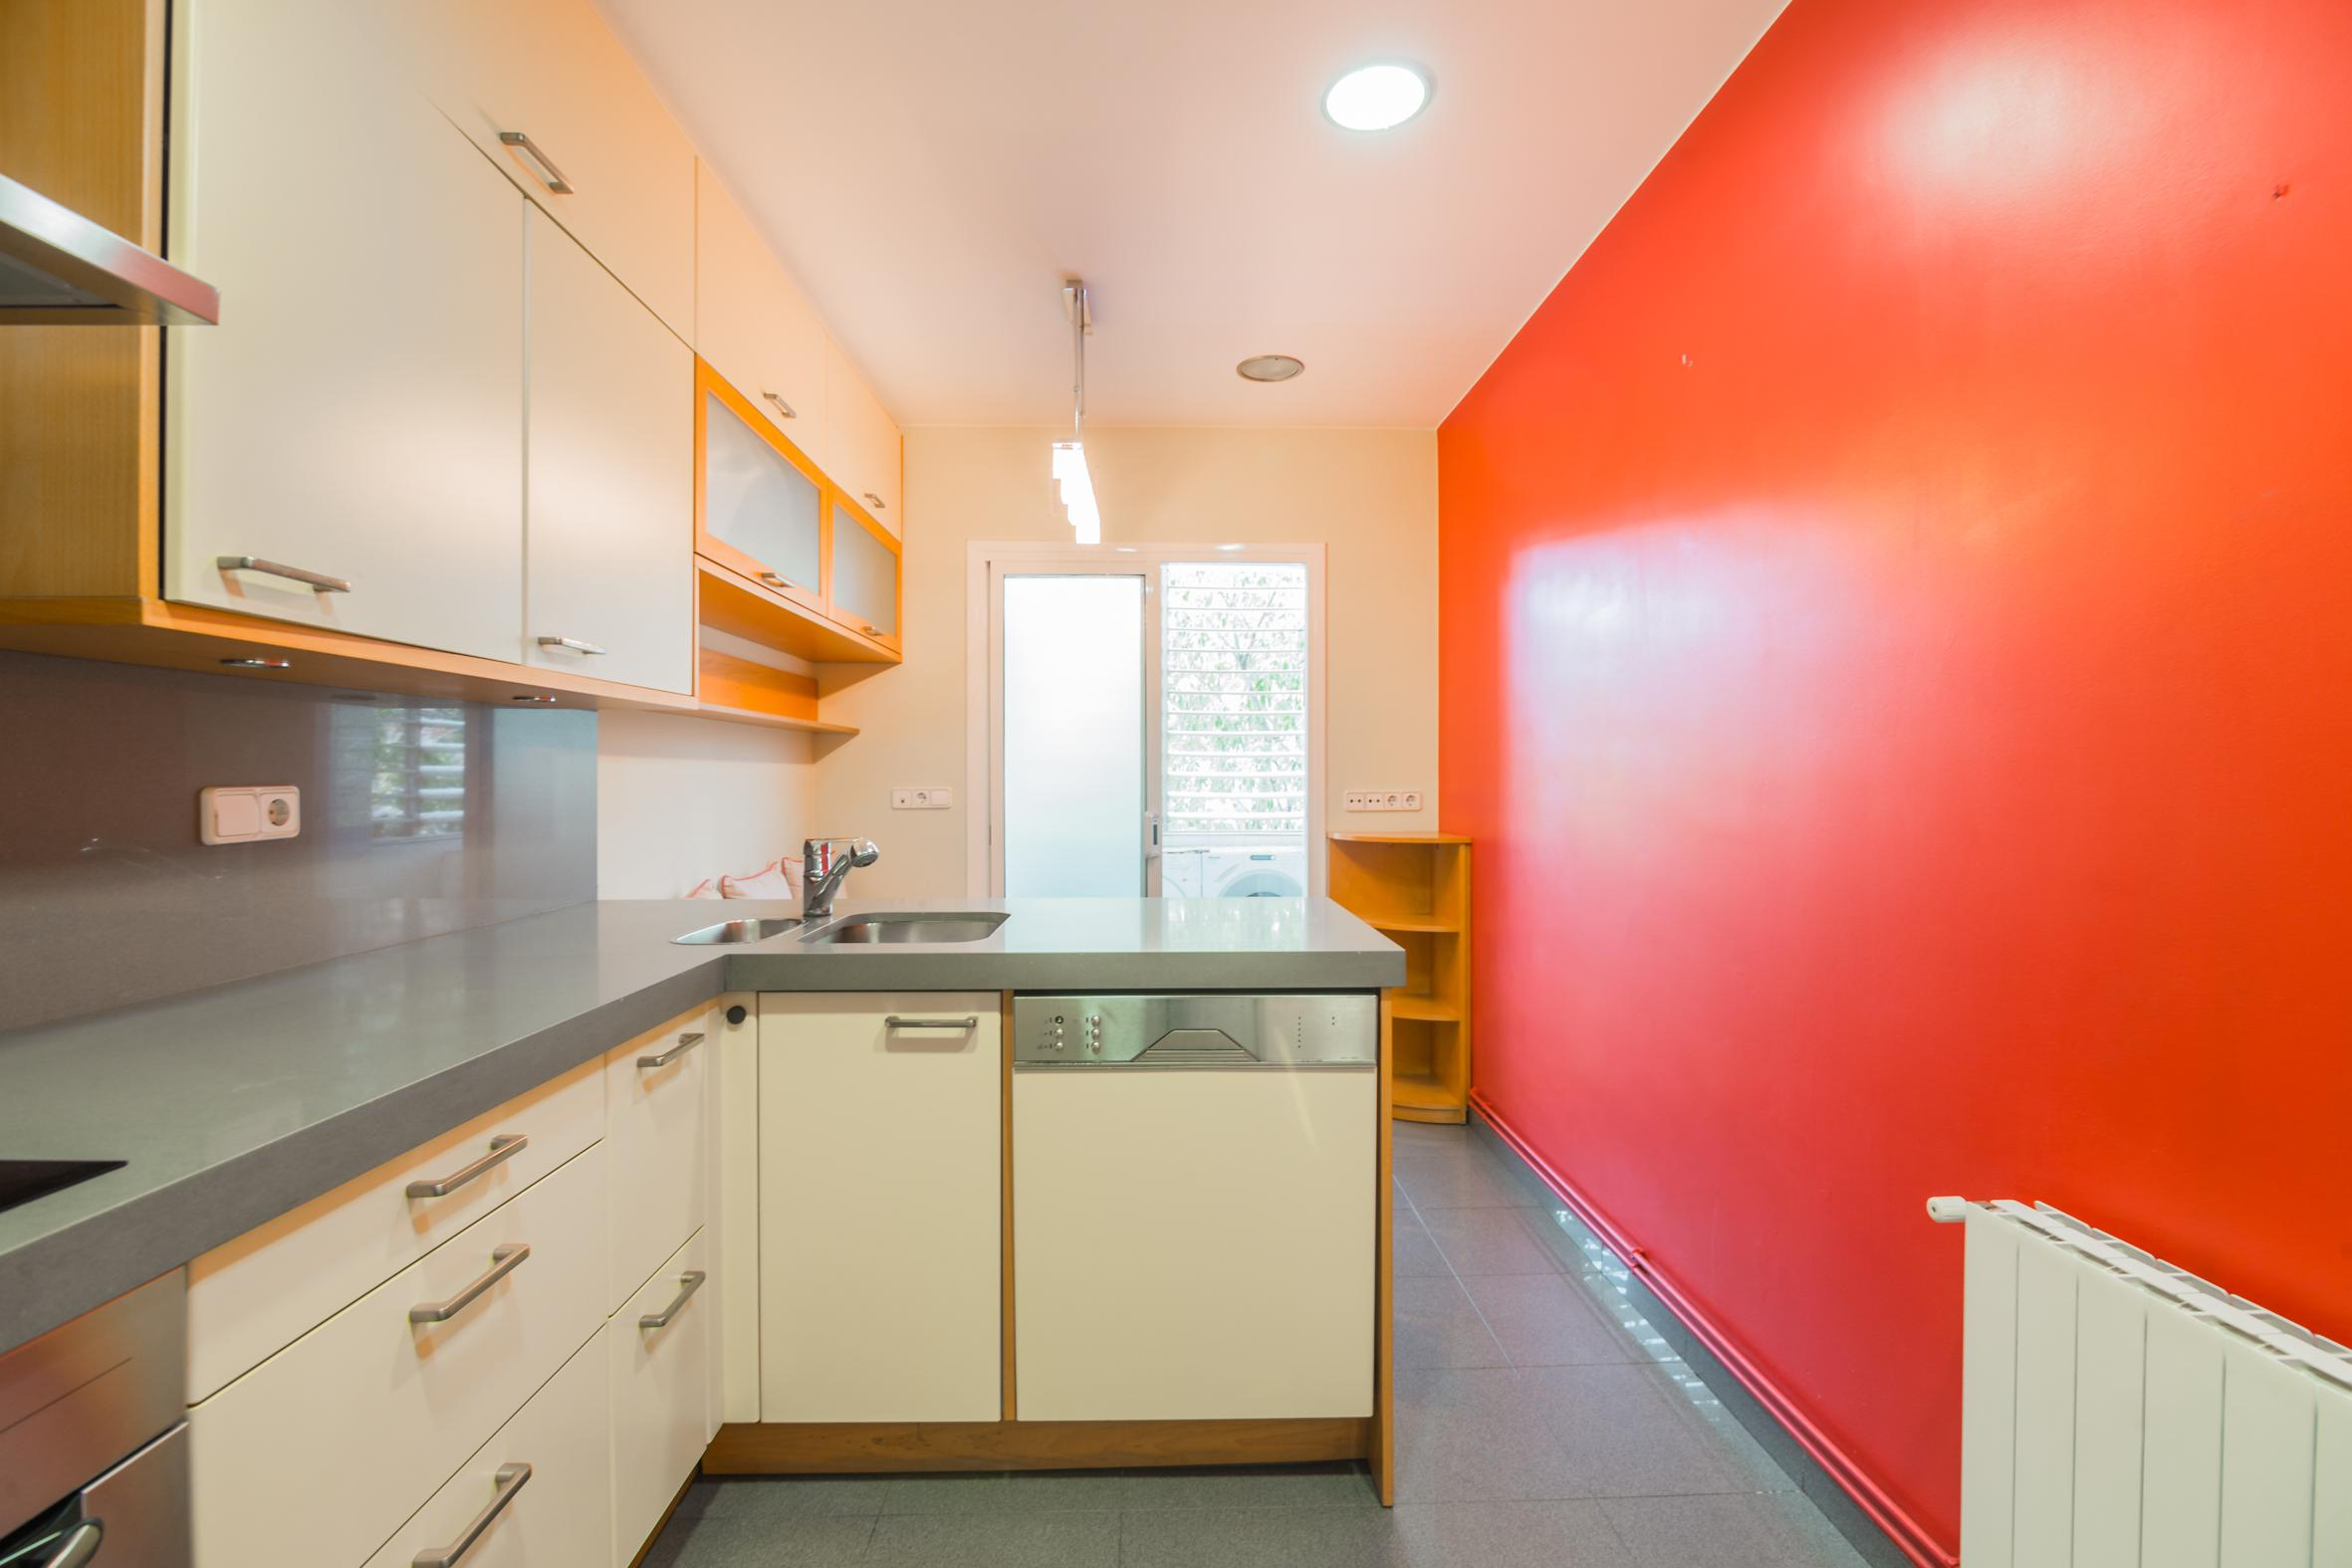 246902 Flat for sale in Les Corts, Pedralbes 4